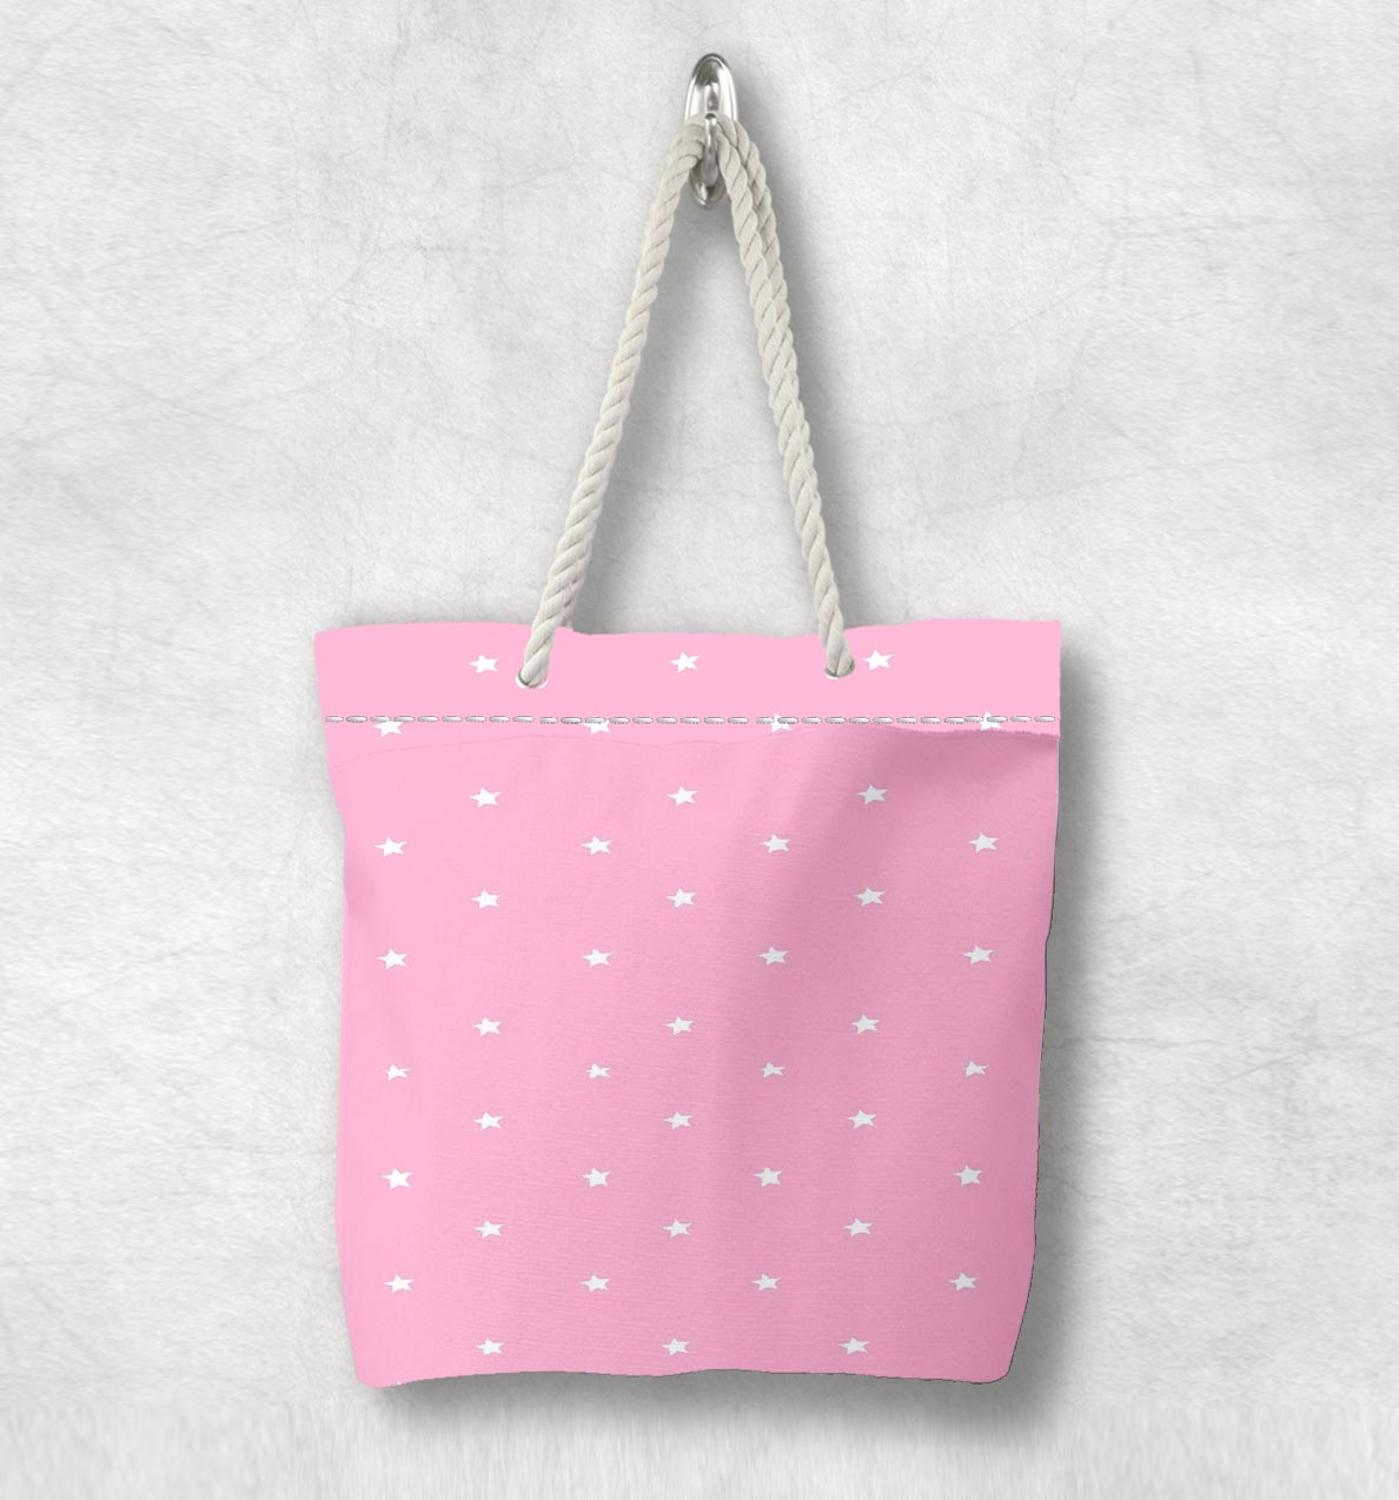 Else Pink White Stars Hugs Pink Hearts Scandinavian White Rope Handle Canvas Bag  Cartoon Print Zippered Tote Bag Shoulder Bag